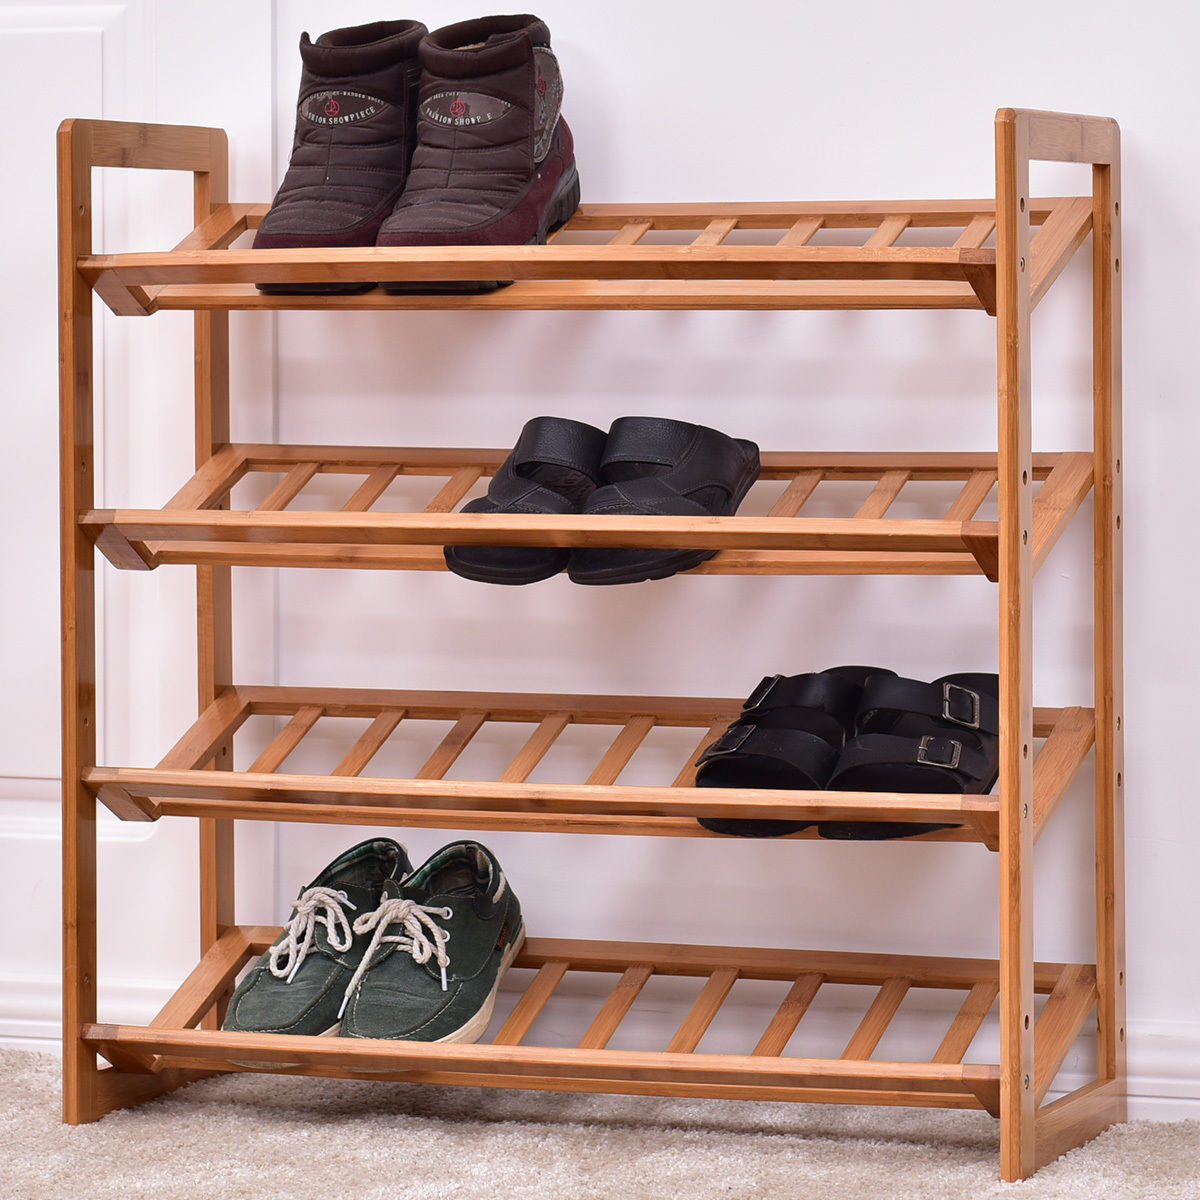 Giantex 4 Tier Bamboo Shoe Rack Modern Entryway Shoe Shelf Holder Storage Organizer Portable Home Furniture HW55407 shoe rack nonwovens steel pipe 4 layers shoe cabinet easy assembled shelf storage organizer stand holder living room furniture